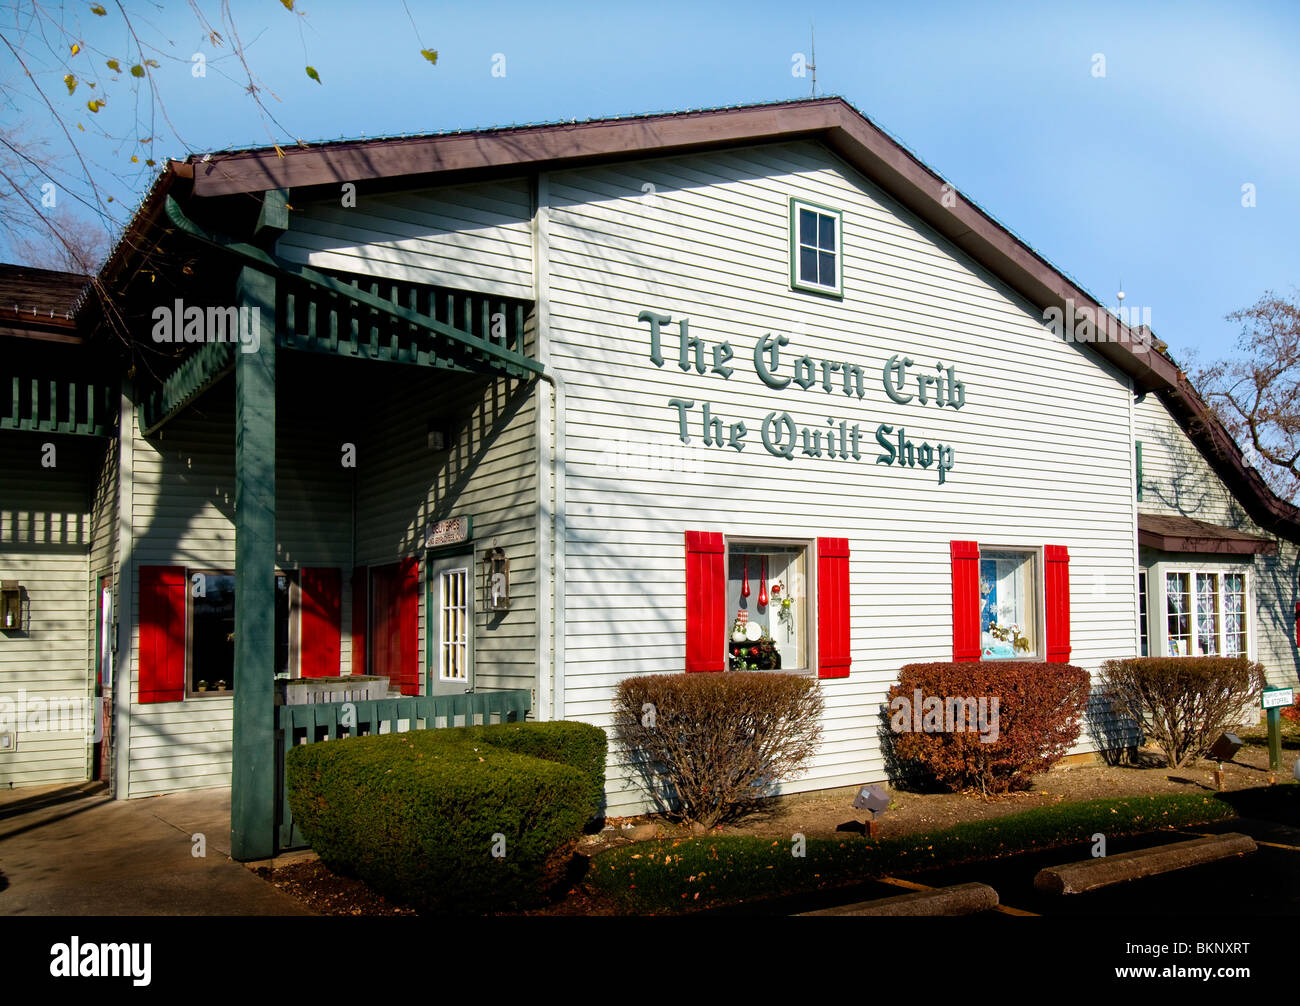 Shops at the Essenhaus Inn and Conference Center in Shipshewana, Indiana - Stock Image